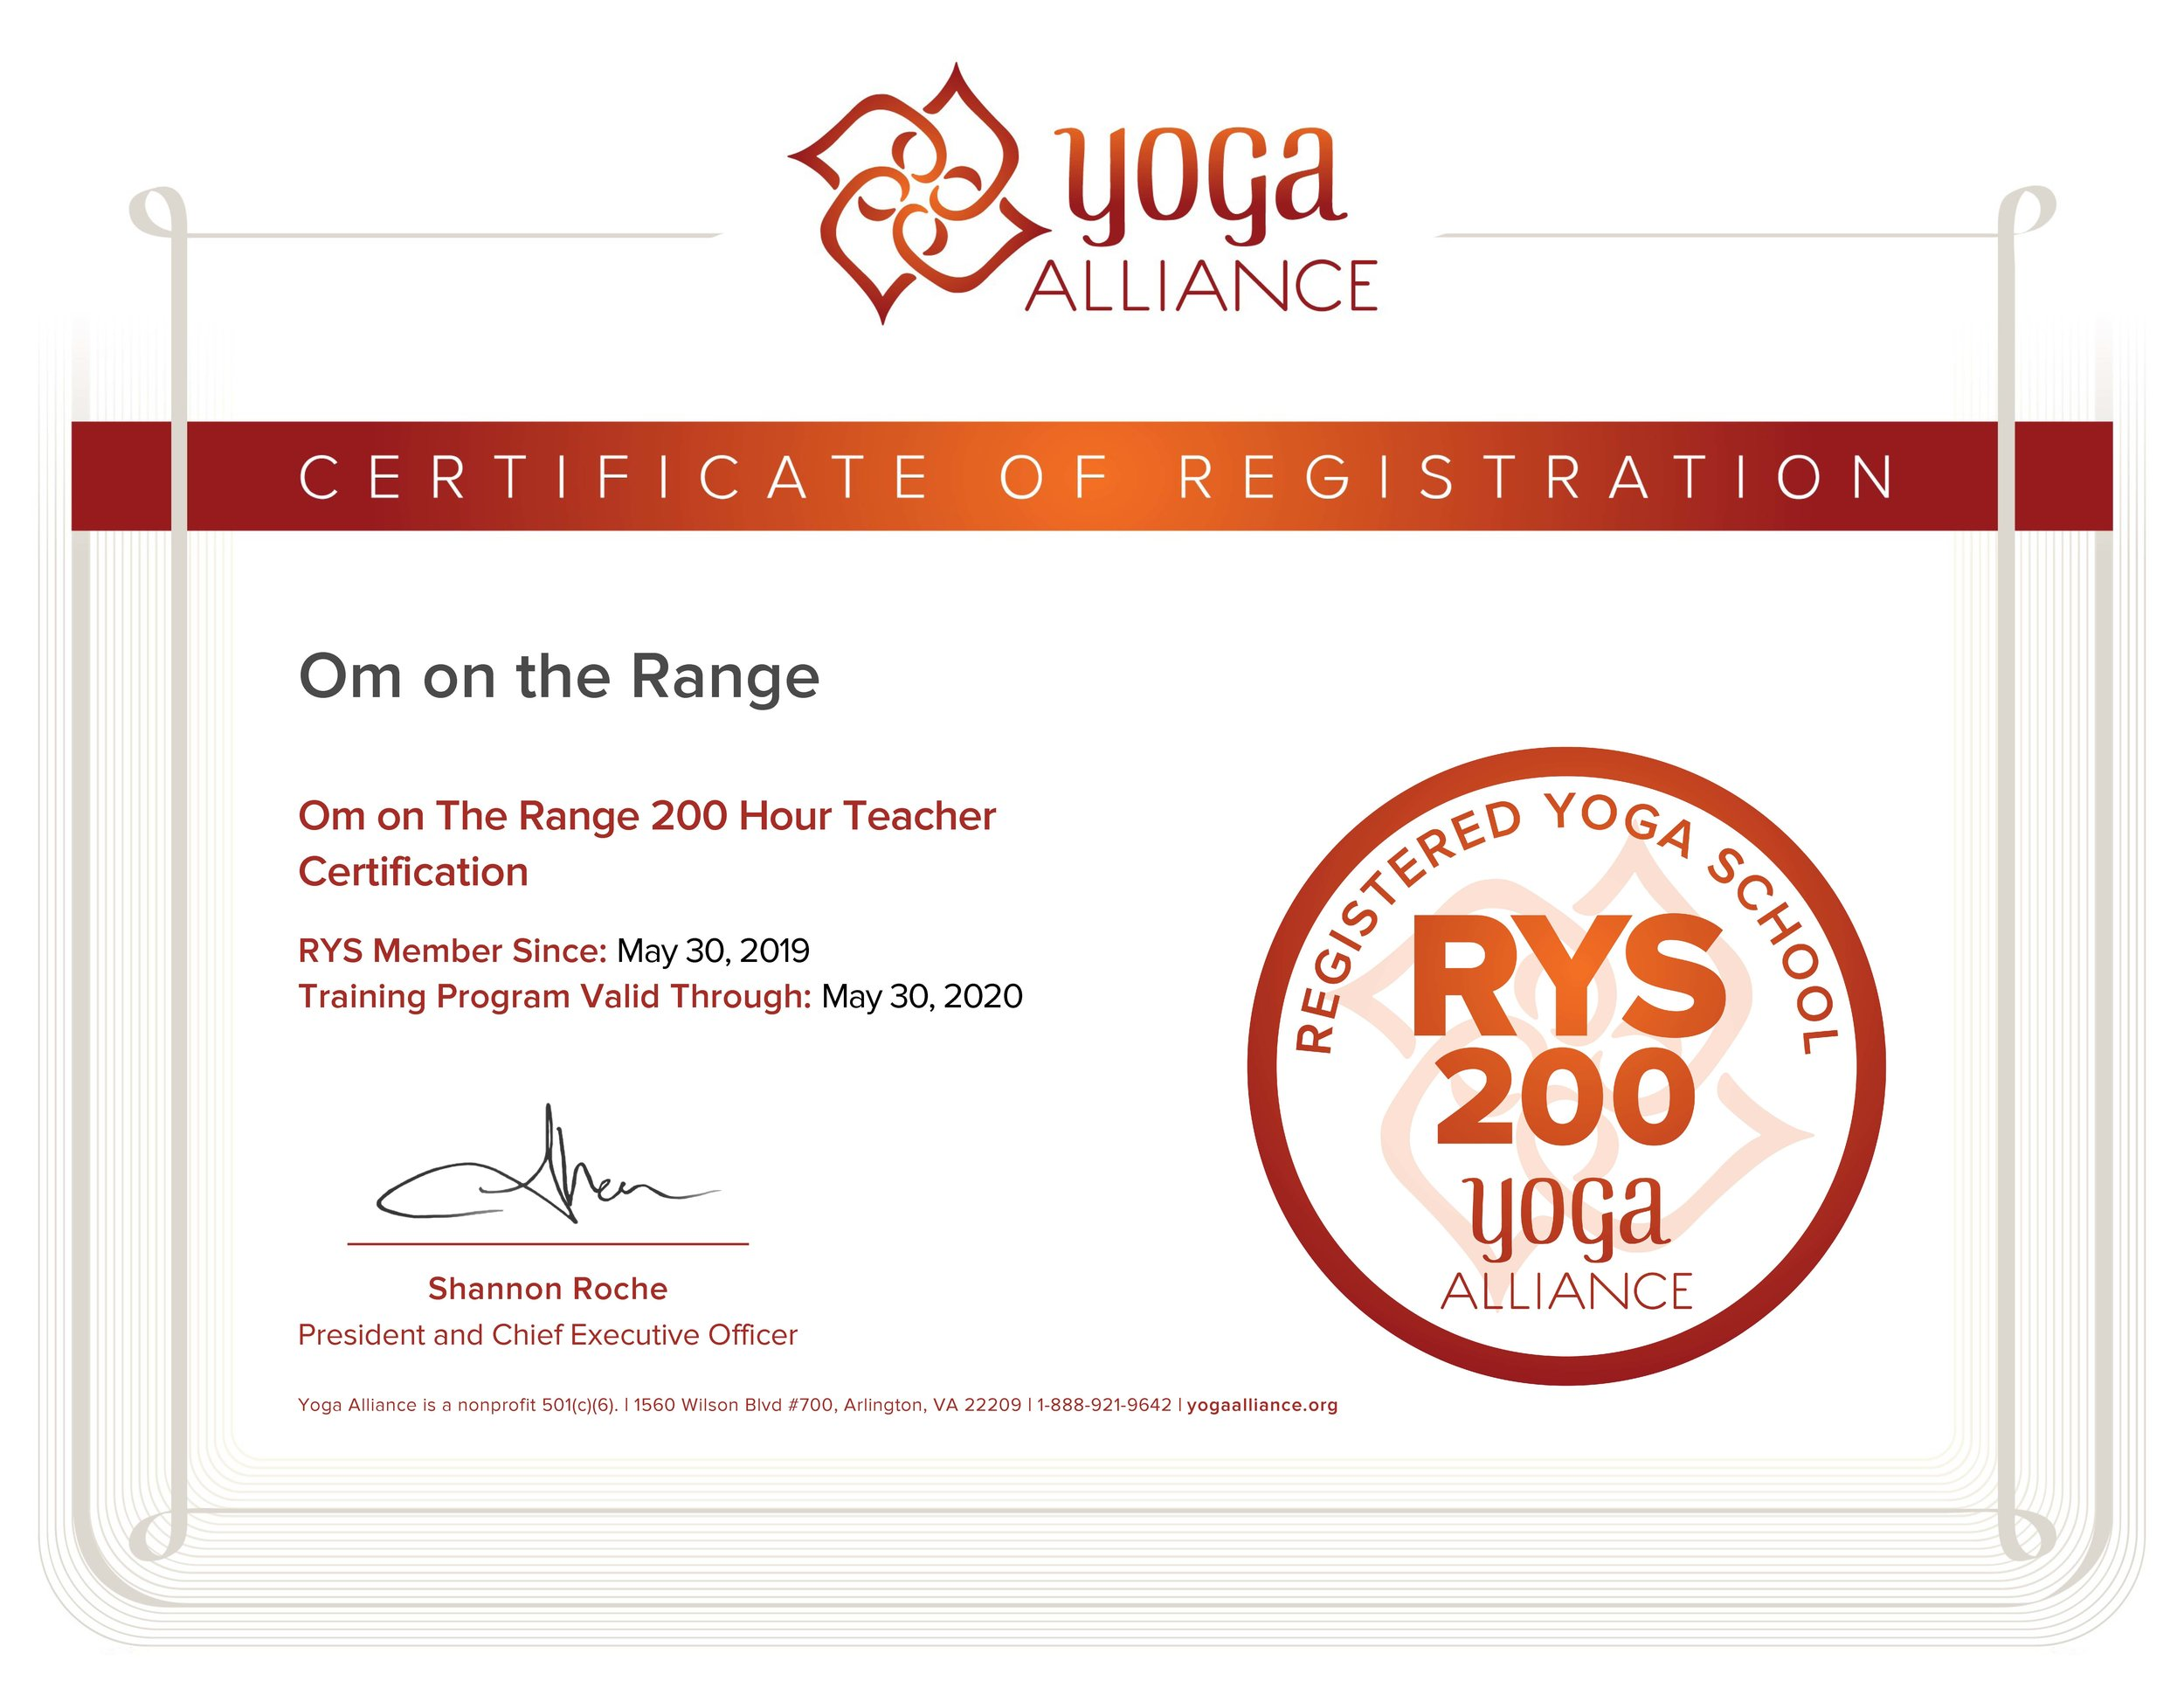 Om on The Range 200 Hour Teacher Certification Certificate.jpg